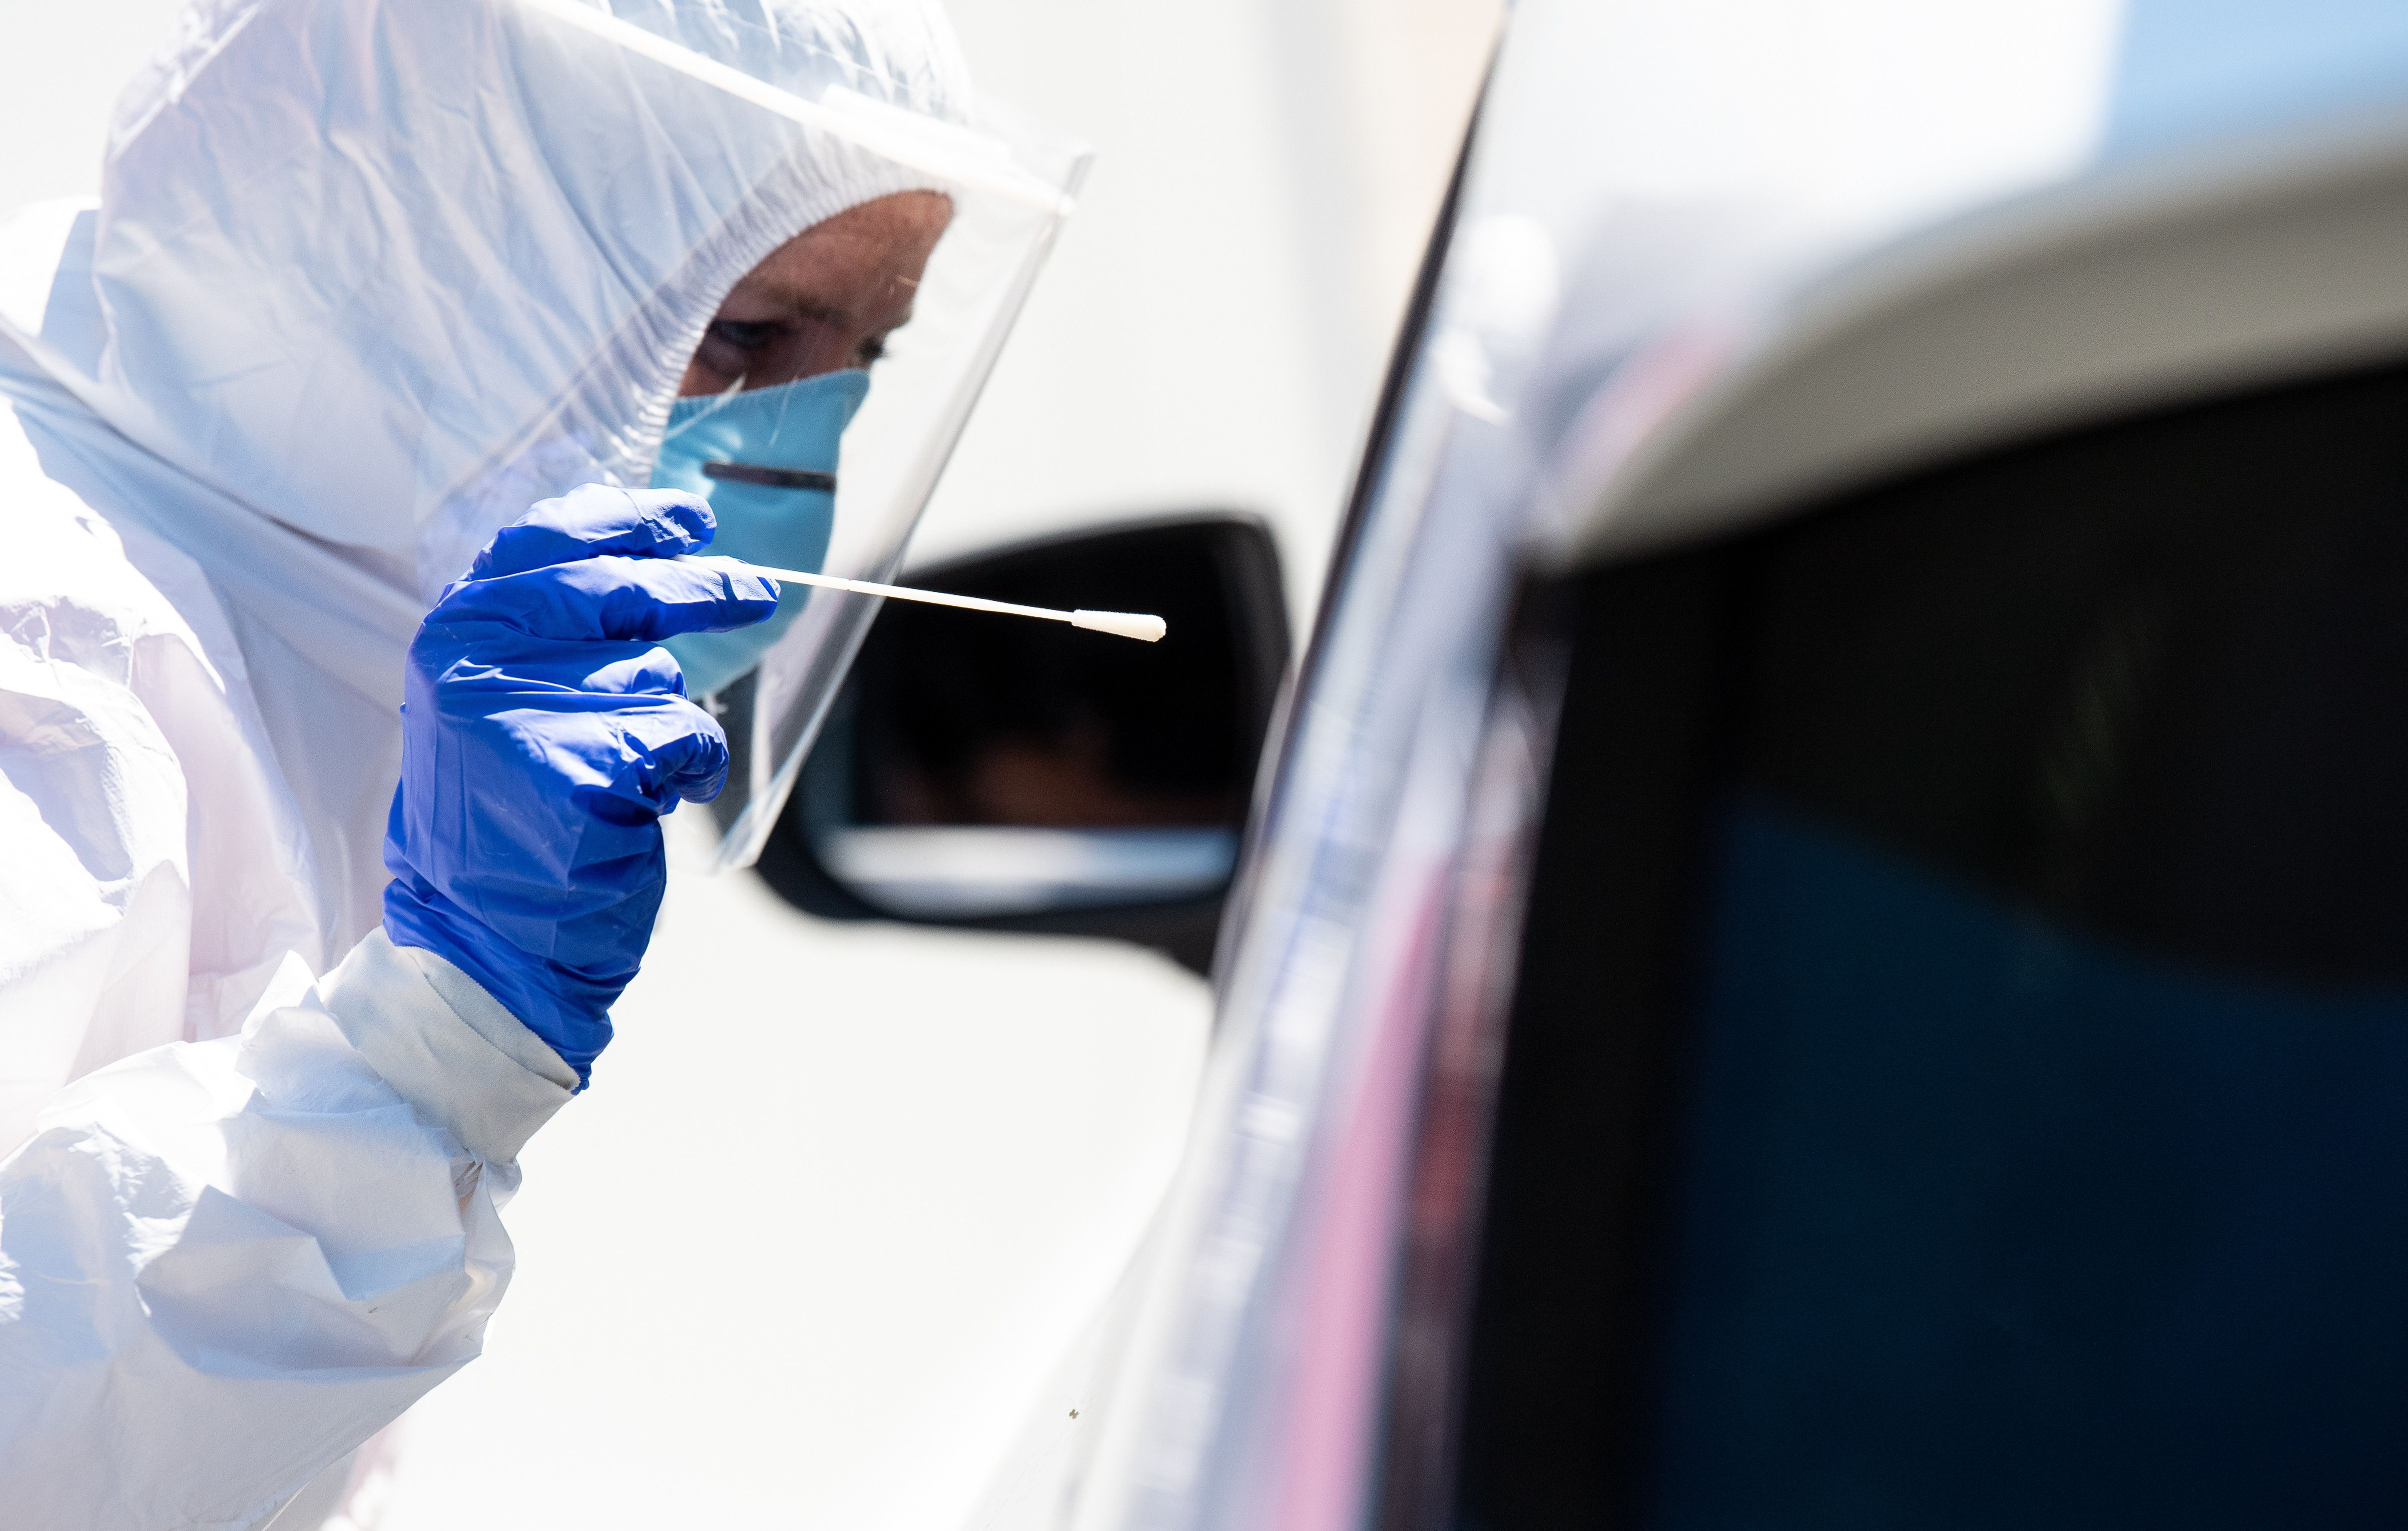 30 July 2020, Bavaria, Bergen: A health worker dressed in Personal Protective Equipment (PPE) takes a smear test from a car driver at a coronavirus (COVID-19) test centre on the motorway 8 (A8) at the Hochfelln-Nord rest area. Photo: Sven Hoppe/dpa